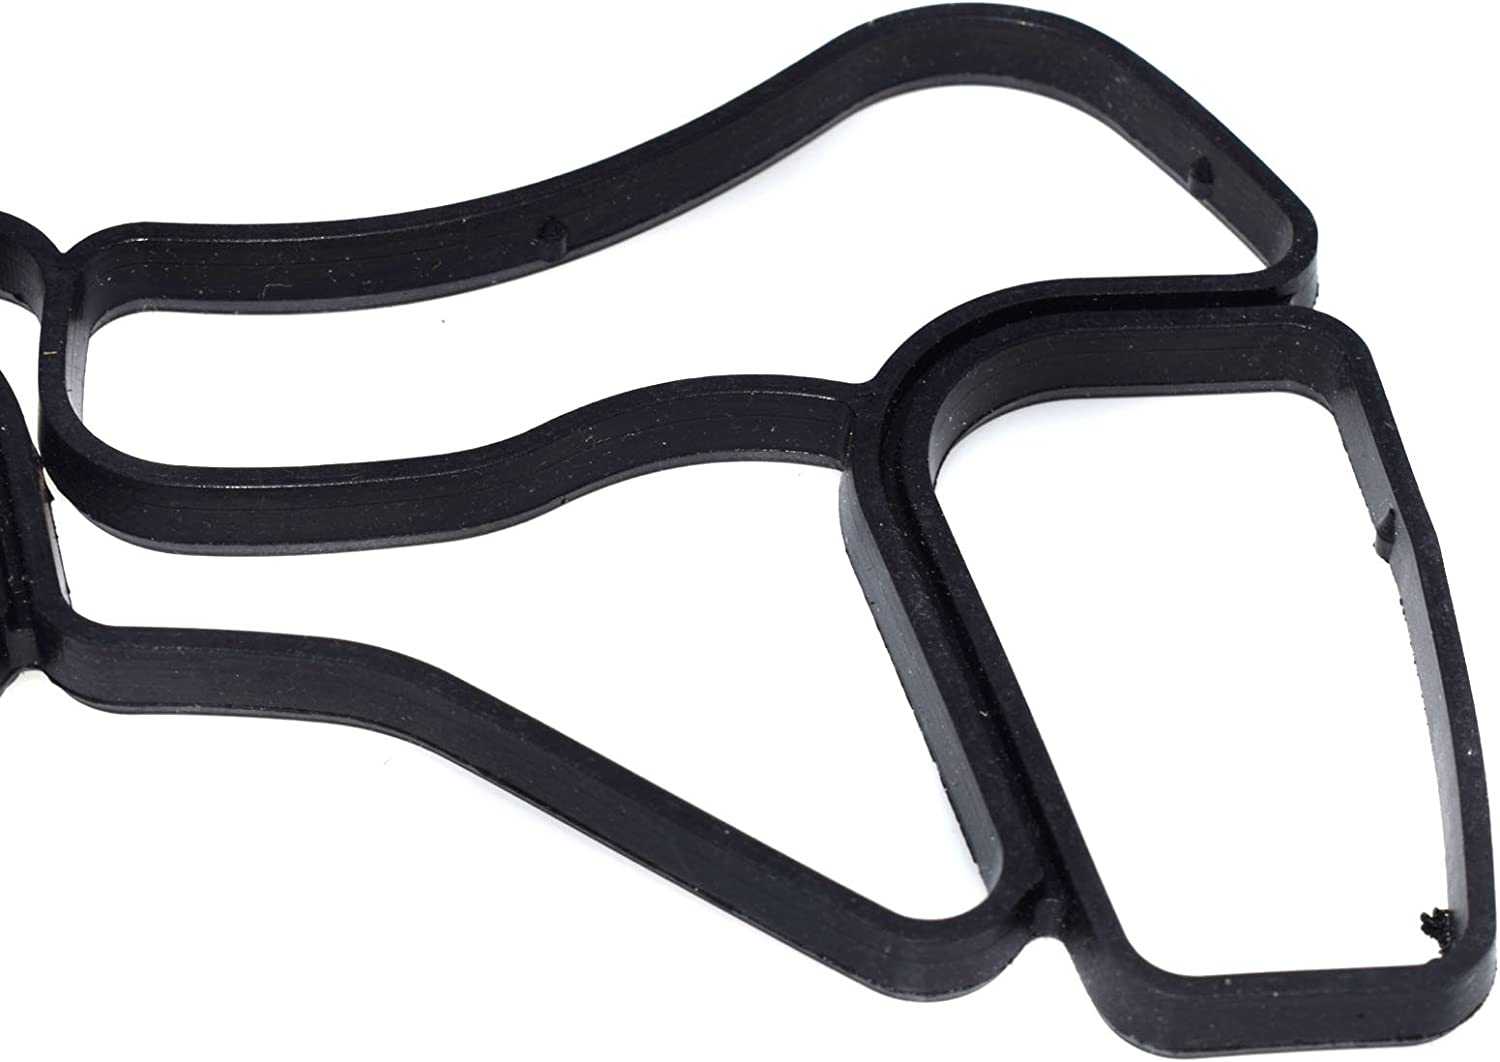 Oil Cooler Gasket For 2007-2011 Mercedes E350 4Matic 2008 2009 2010 S865GY